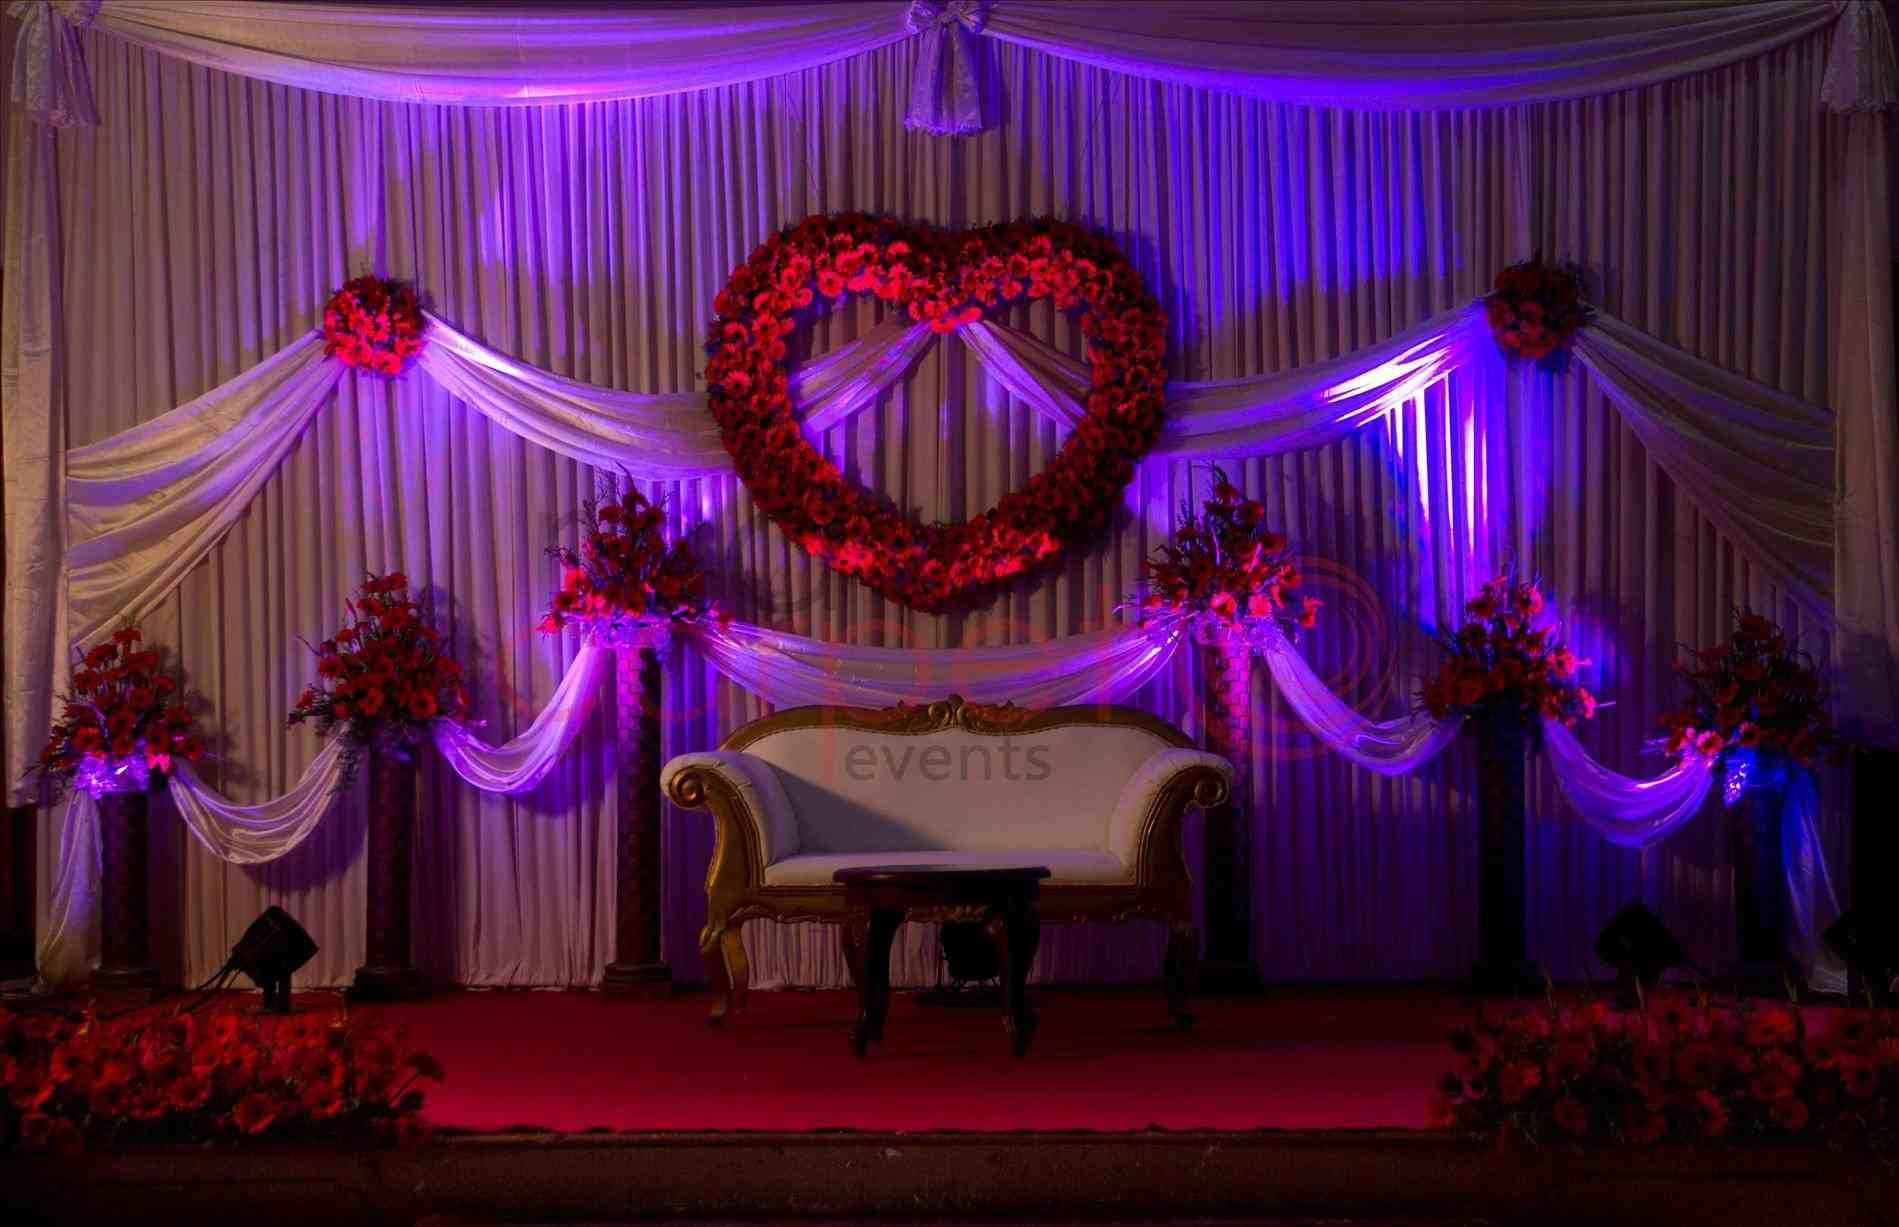 Wedding stage simple decoration images  simple indian wedding decorations  Weddings  Pinterest  Wedding